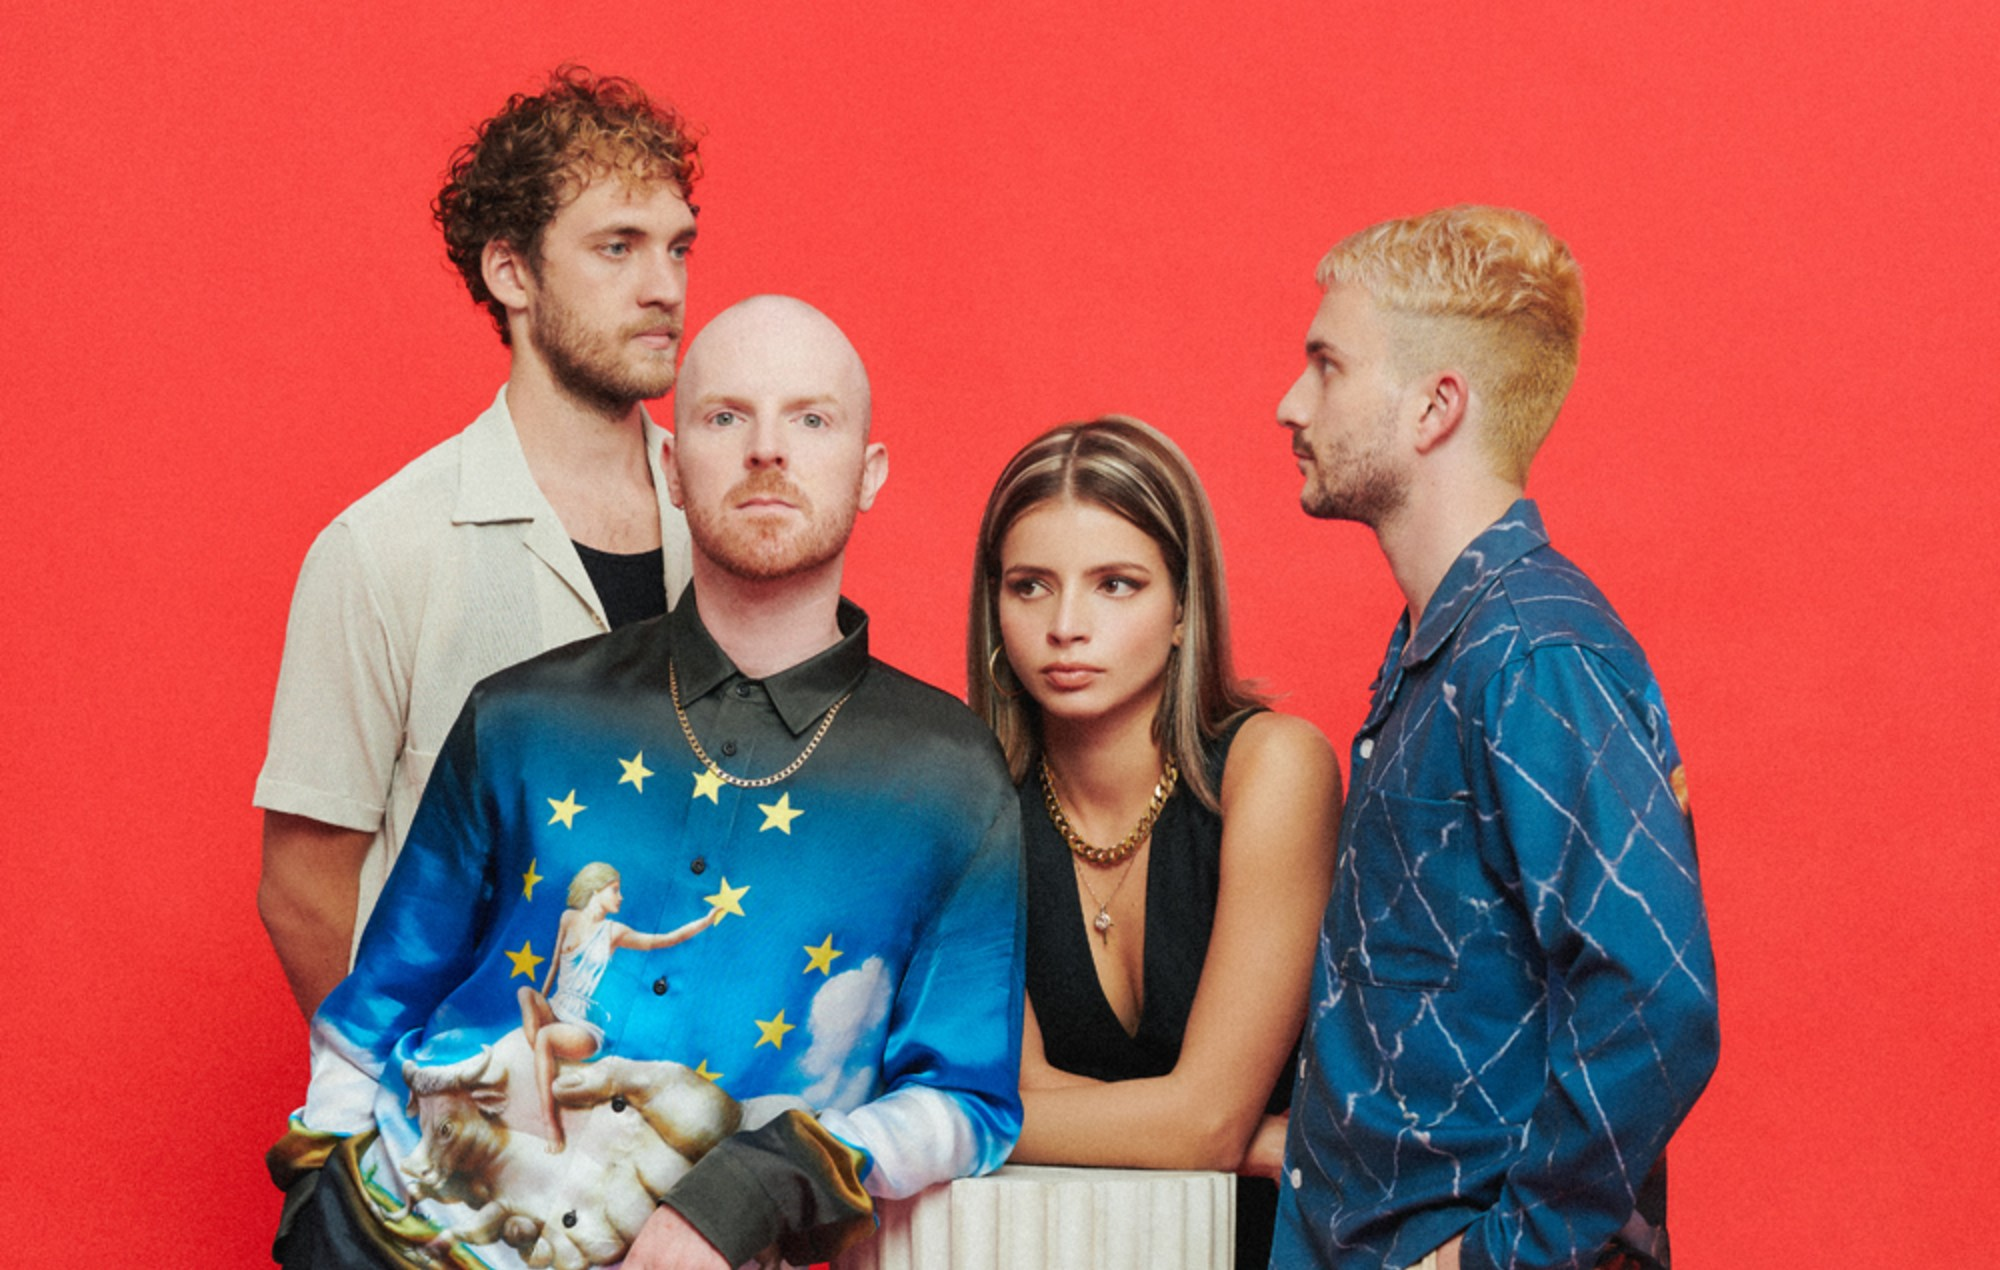 The Jungle Giants announce new album 'Love Signs'